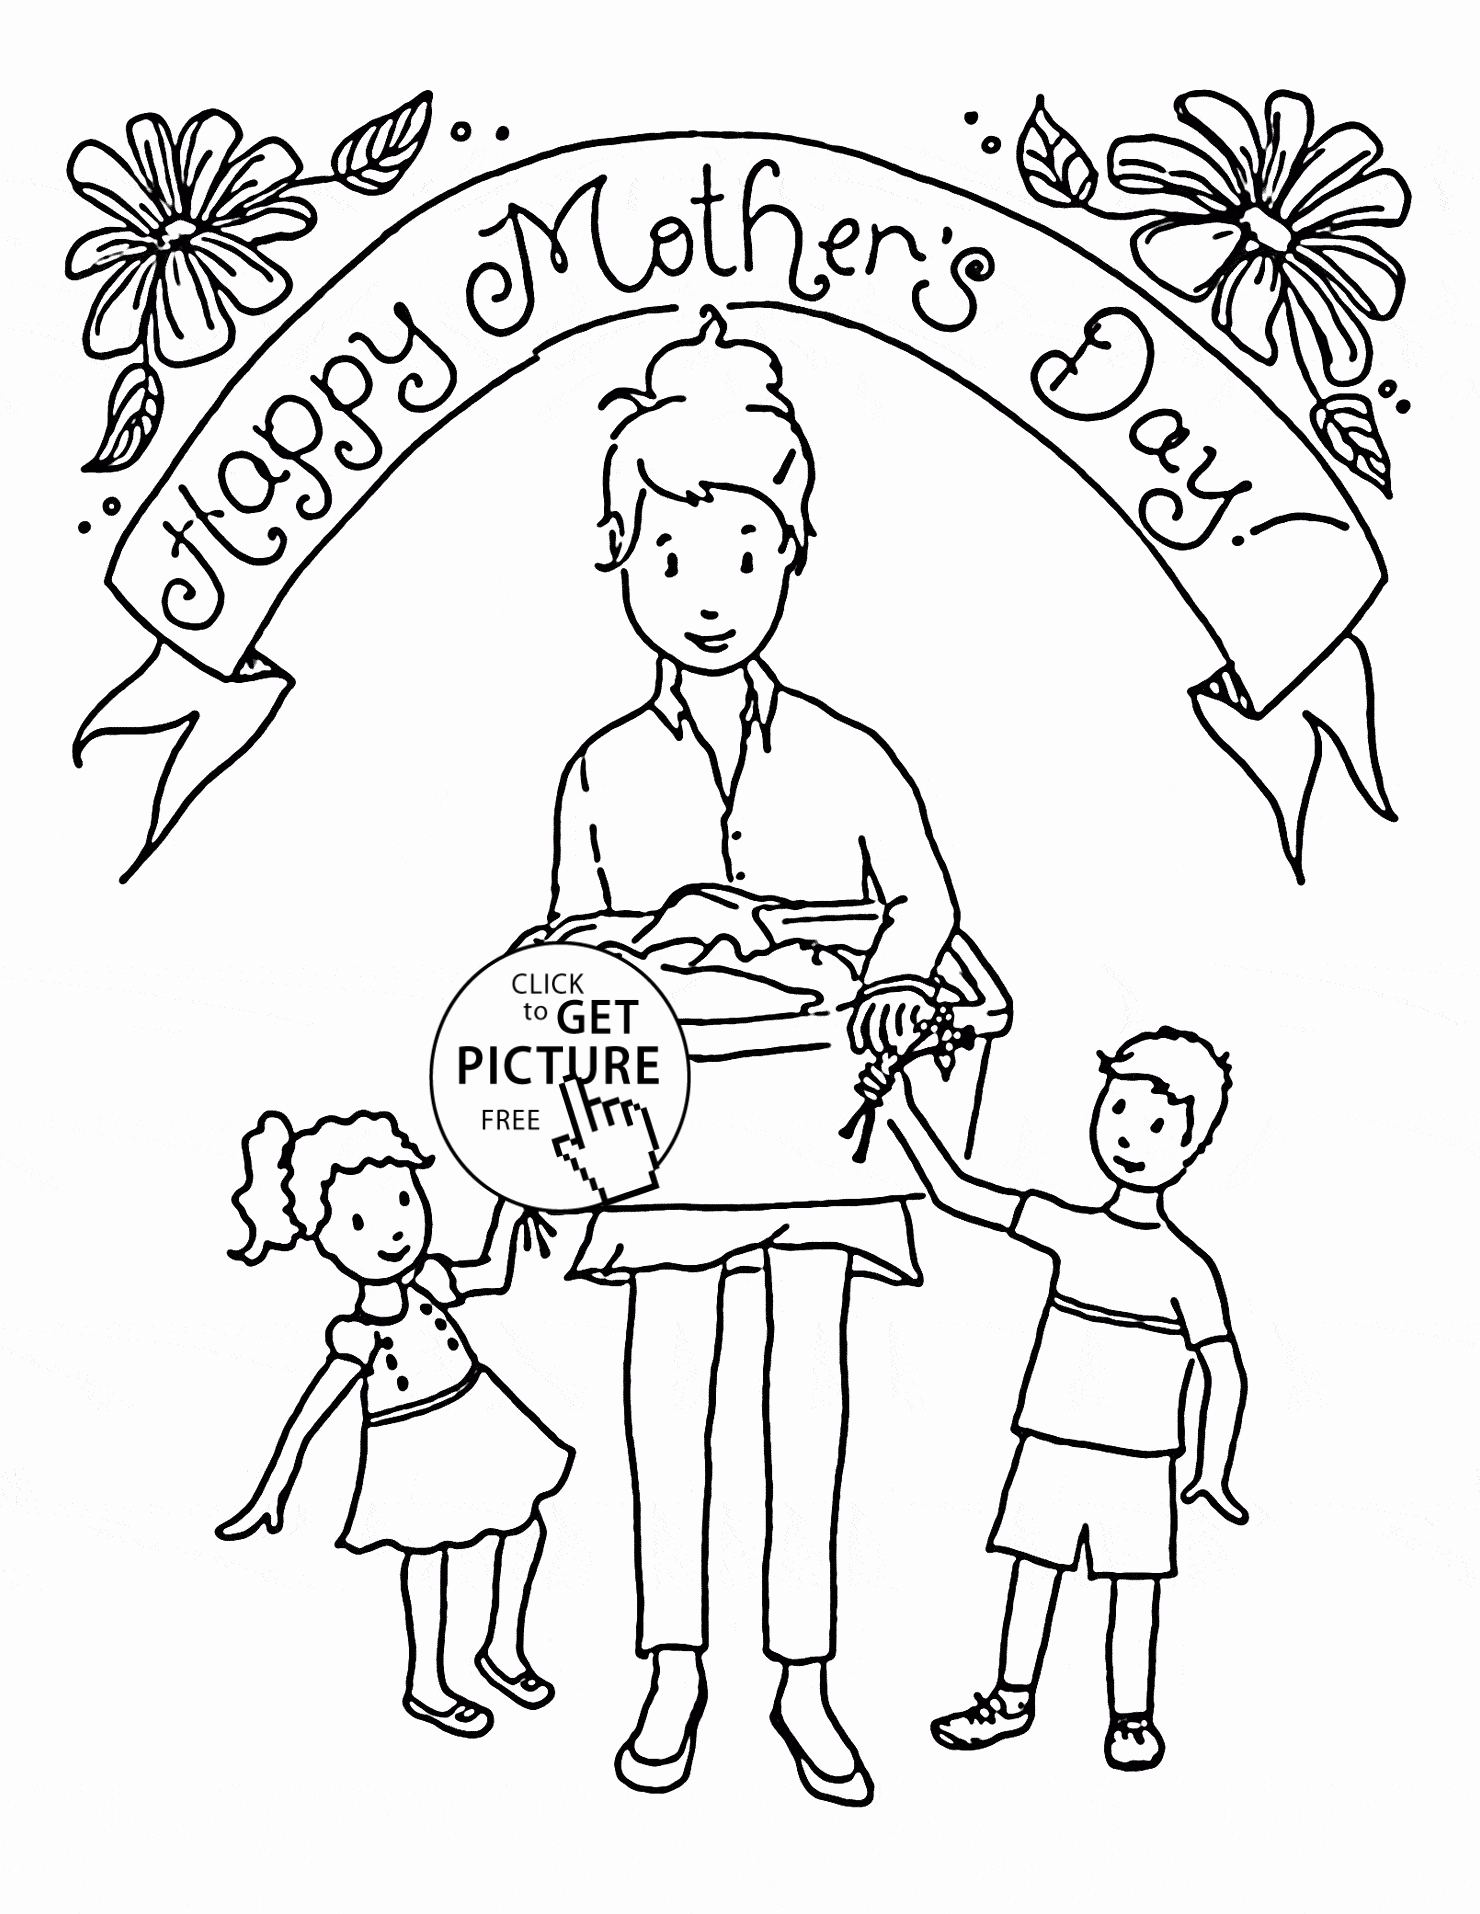 Mother Earth Coloring Pages At Getcolorings